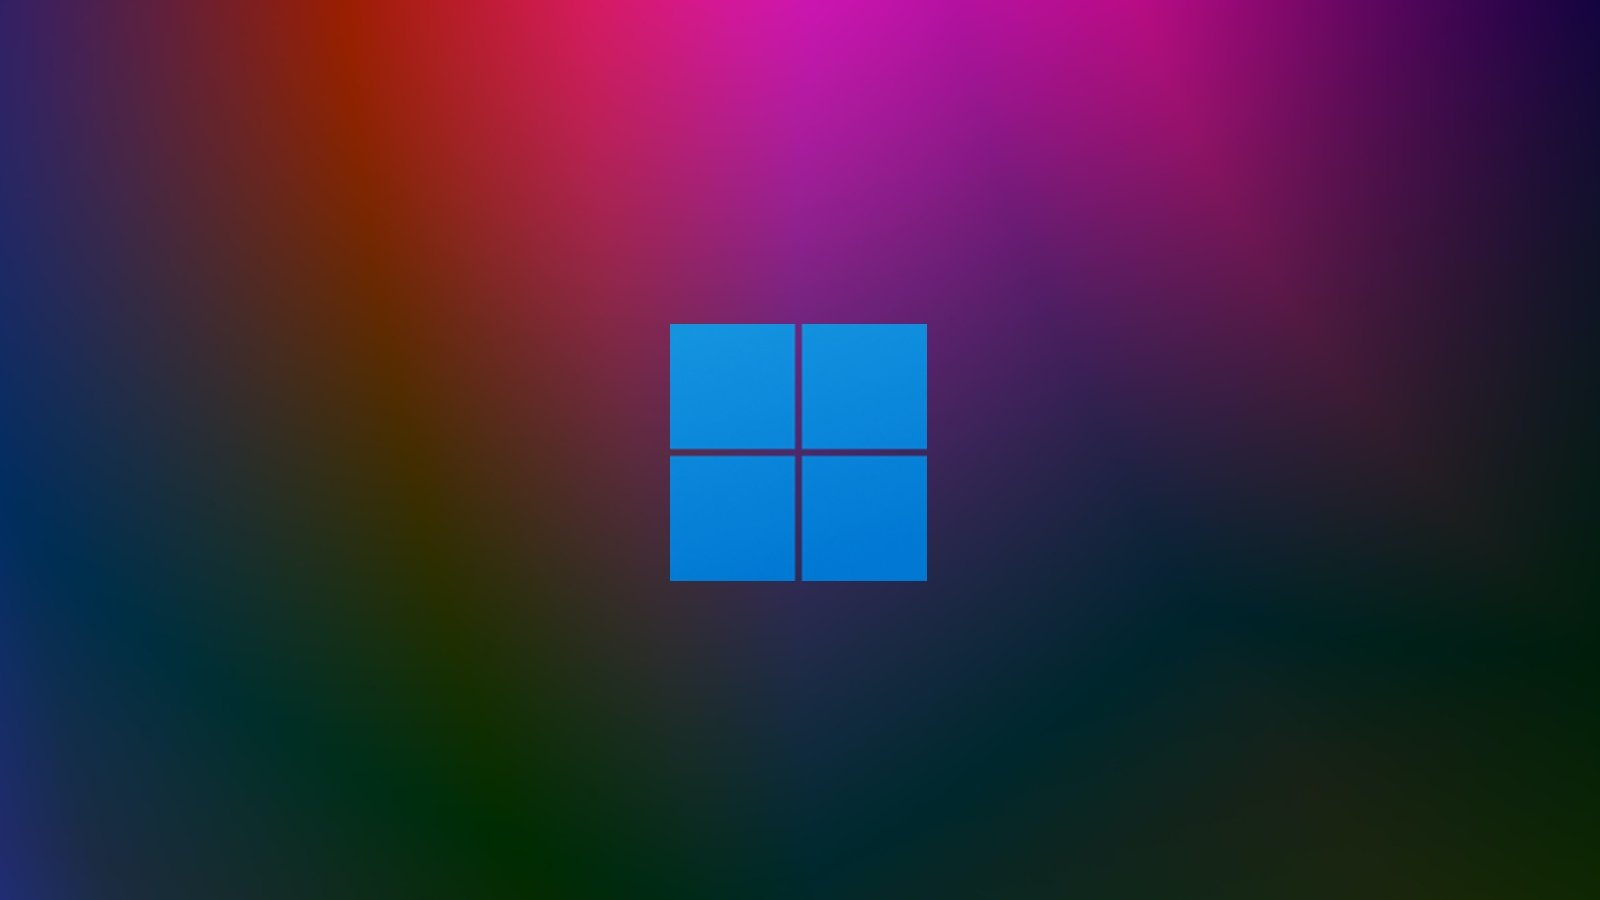 Windows 11 The new features coming to Microsofts next gen OS 1600x900